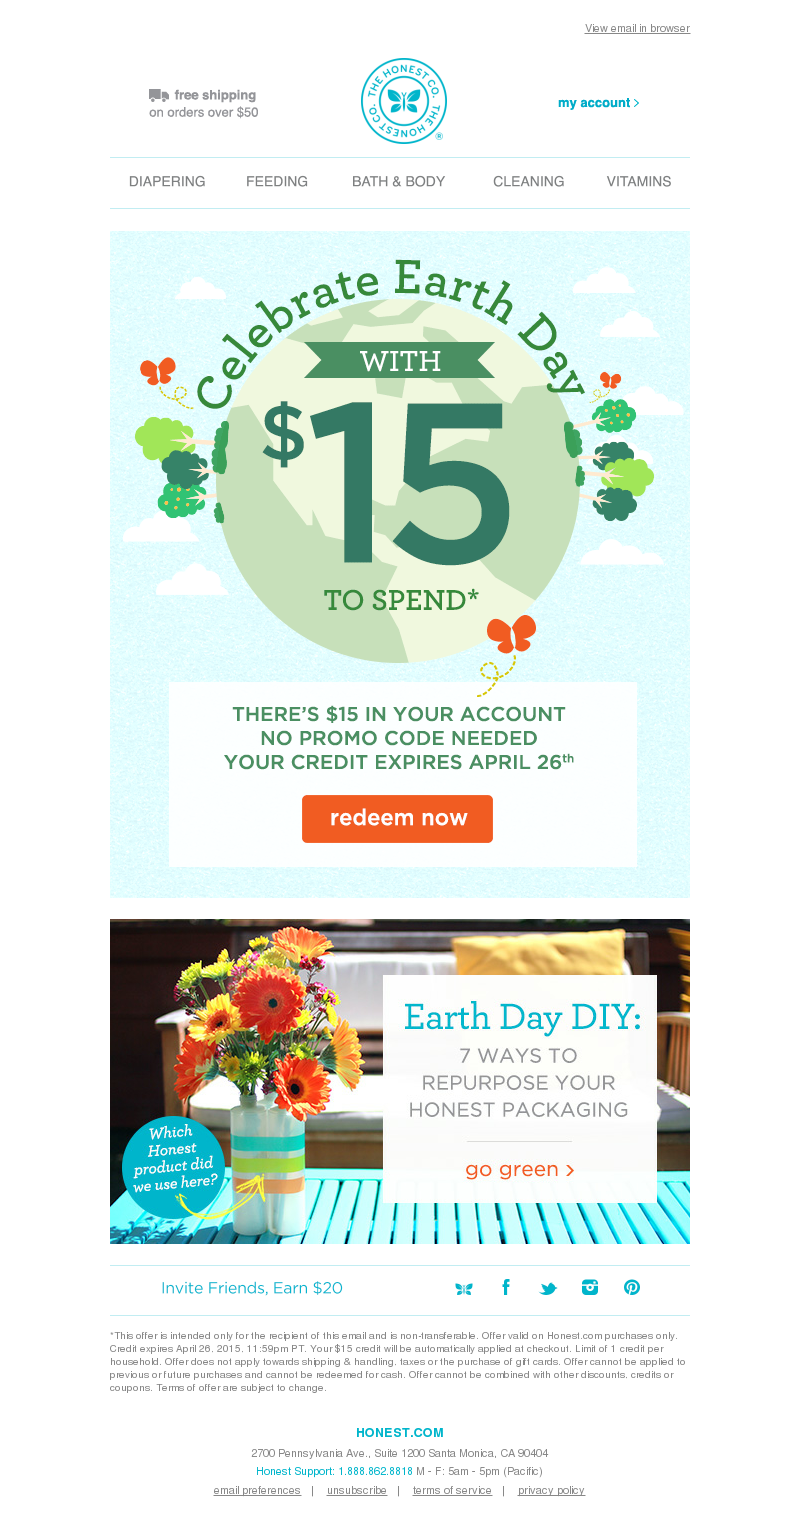 You have $15 in your account to spend at Honest.com - Happy Earth Day! View